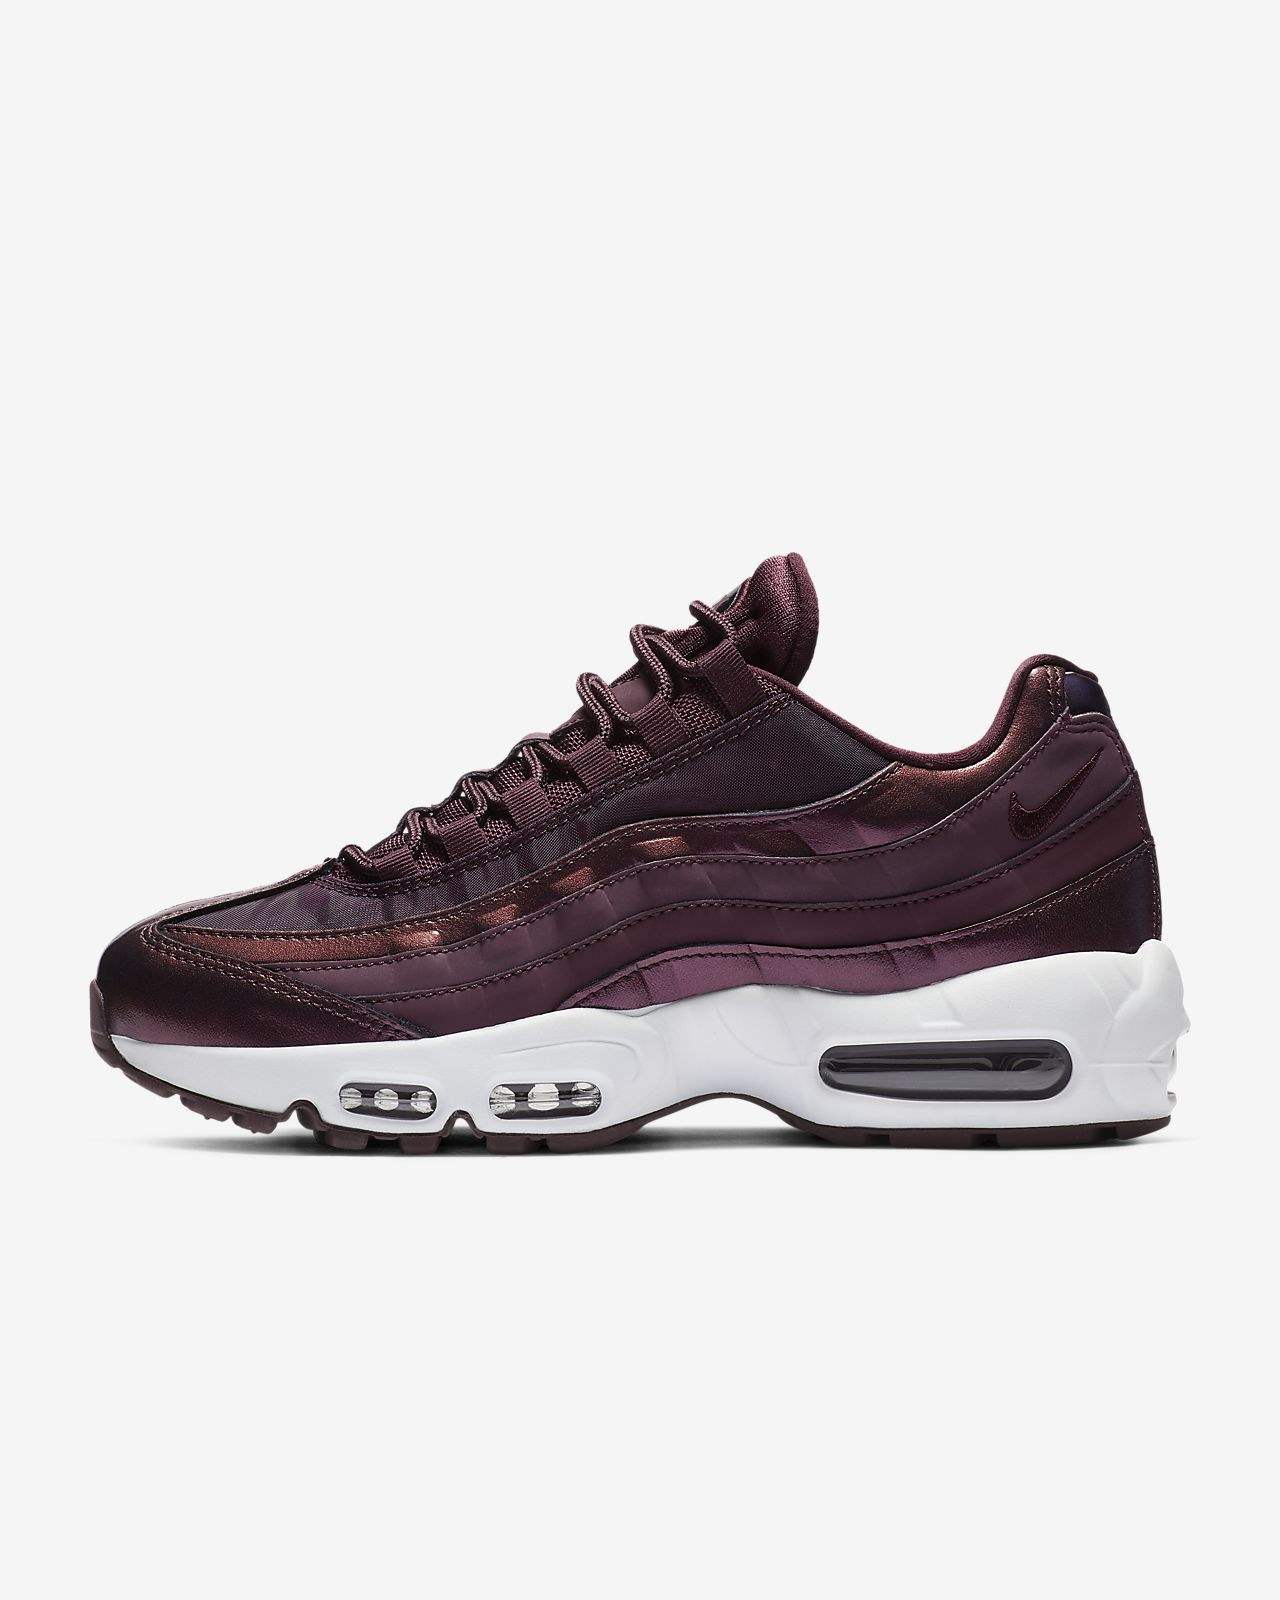 new concept e14ac 38c50 ... Buty damskie Nike Air Max 95 Lux